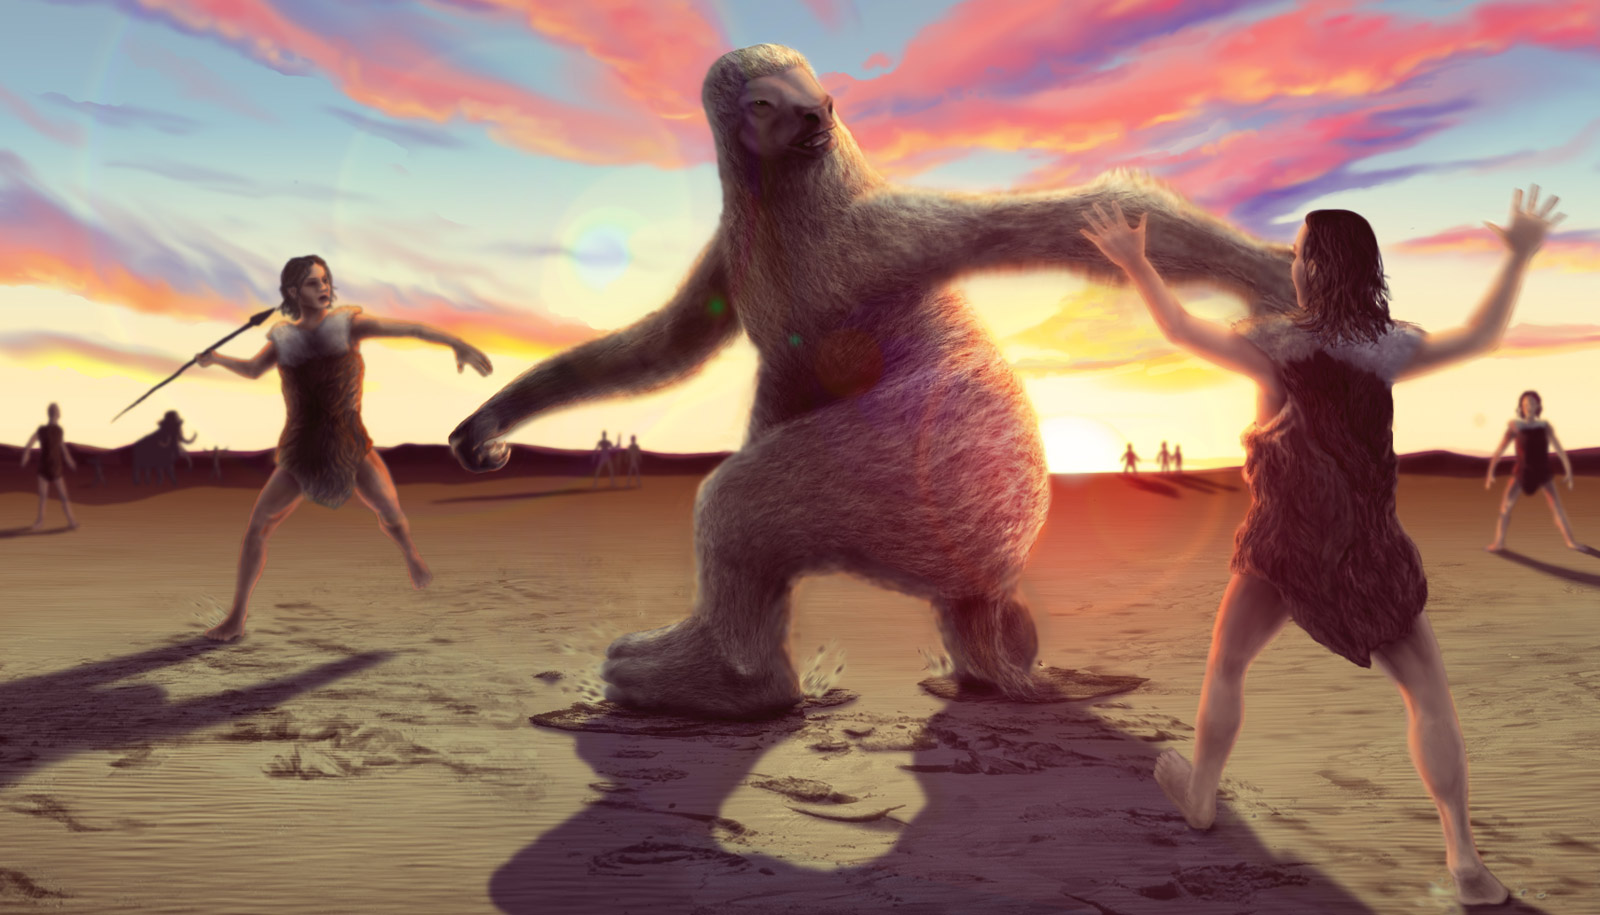 illustration of giant ground sloth and hunting humans